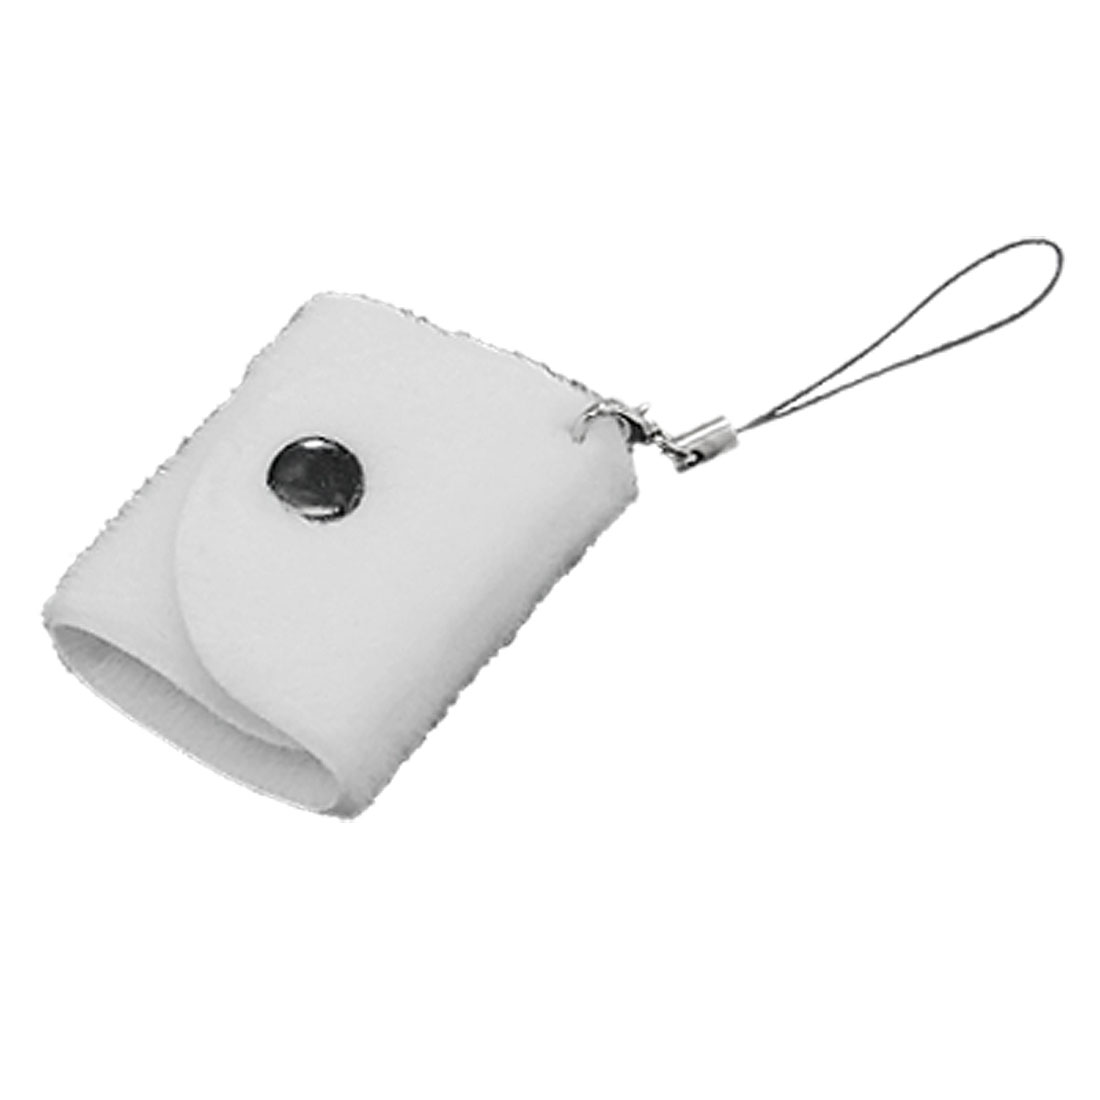 Bag Style Mobile Phone Strap - White